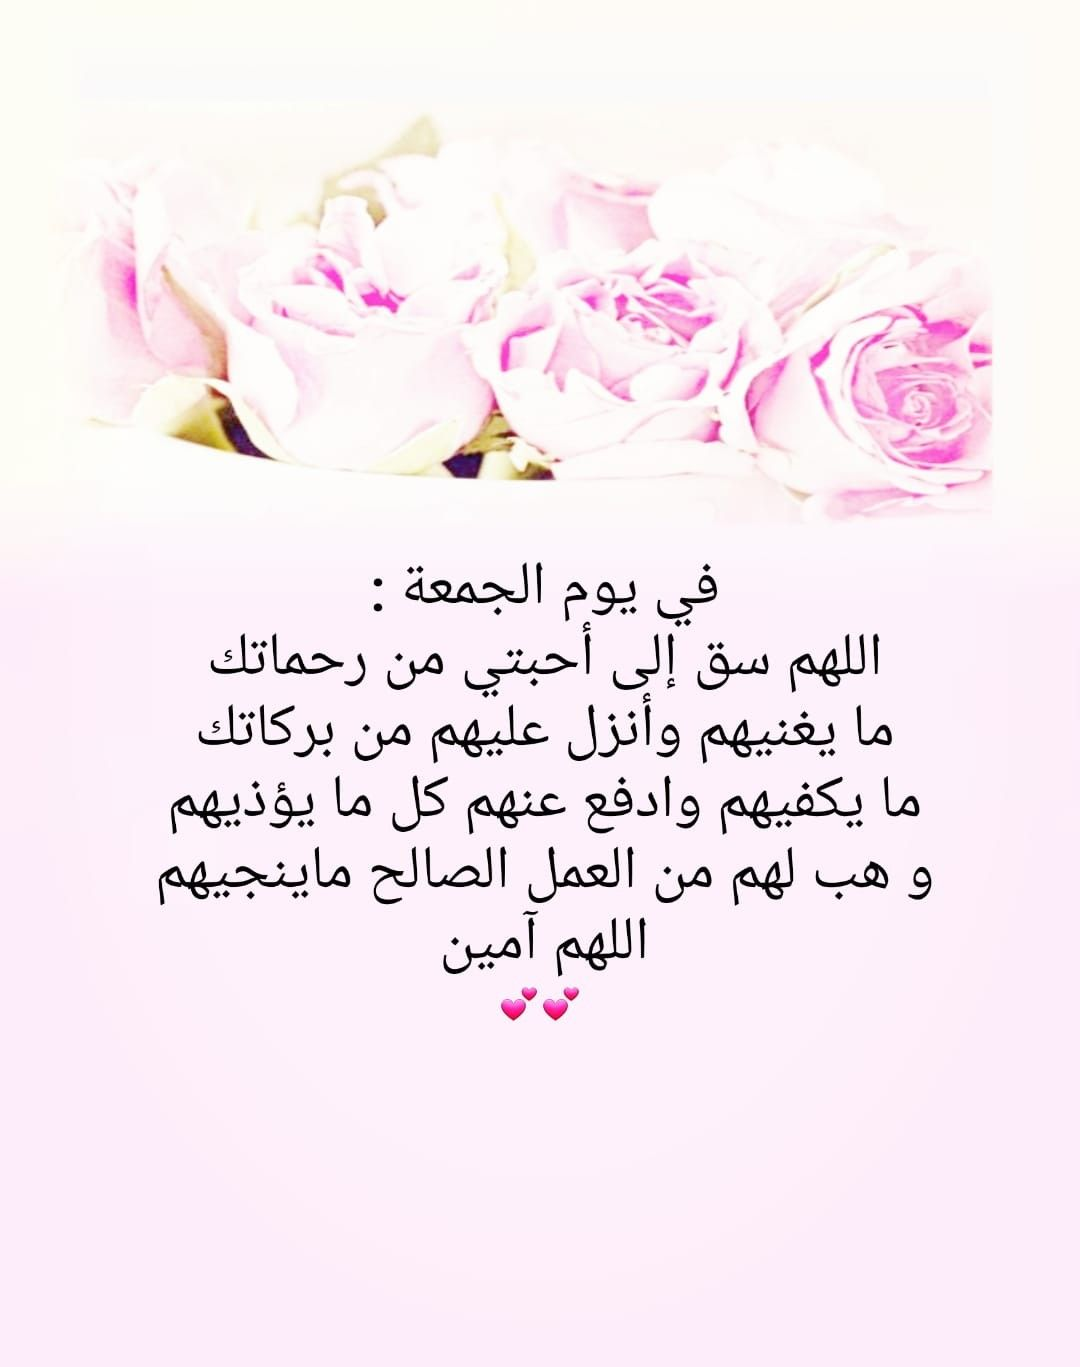 Pin By Eman Duniya On رسالة الجمعة Morning Quotes Blessed Friday Quotes